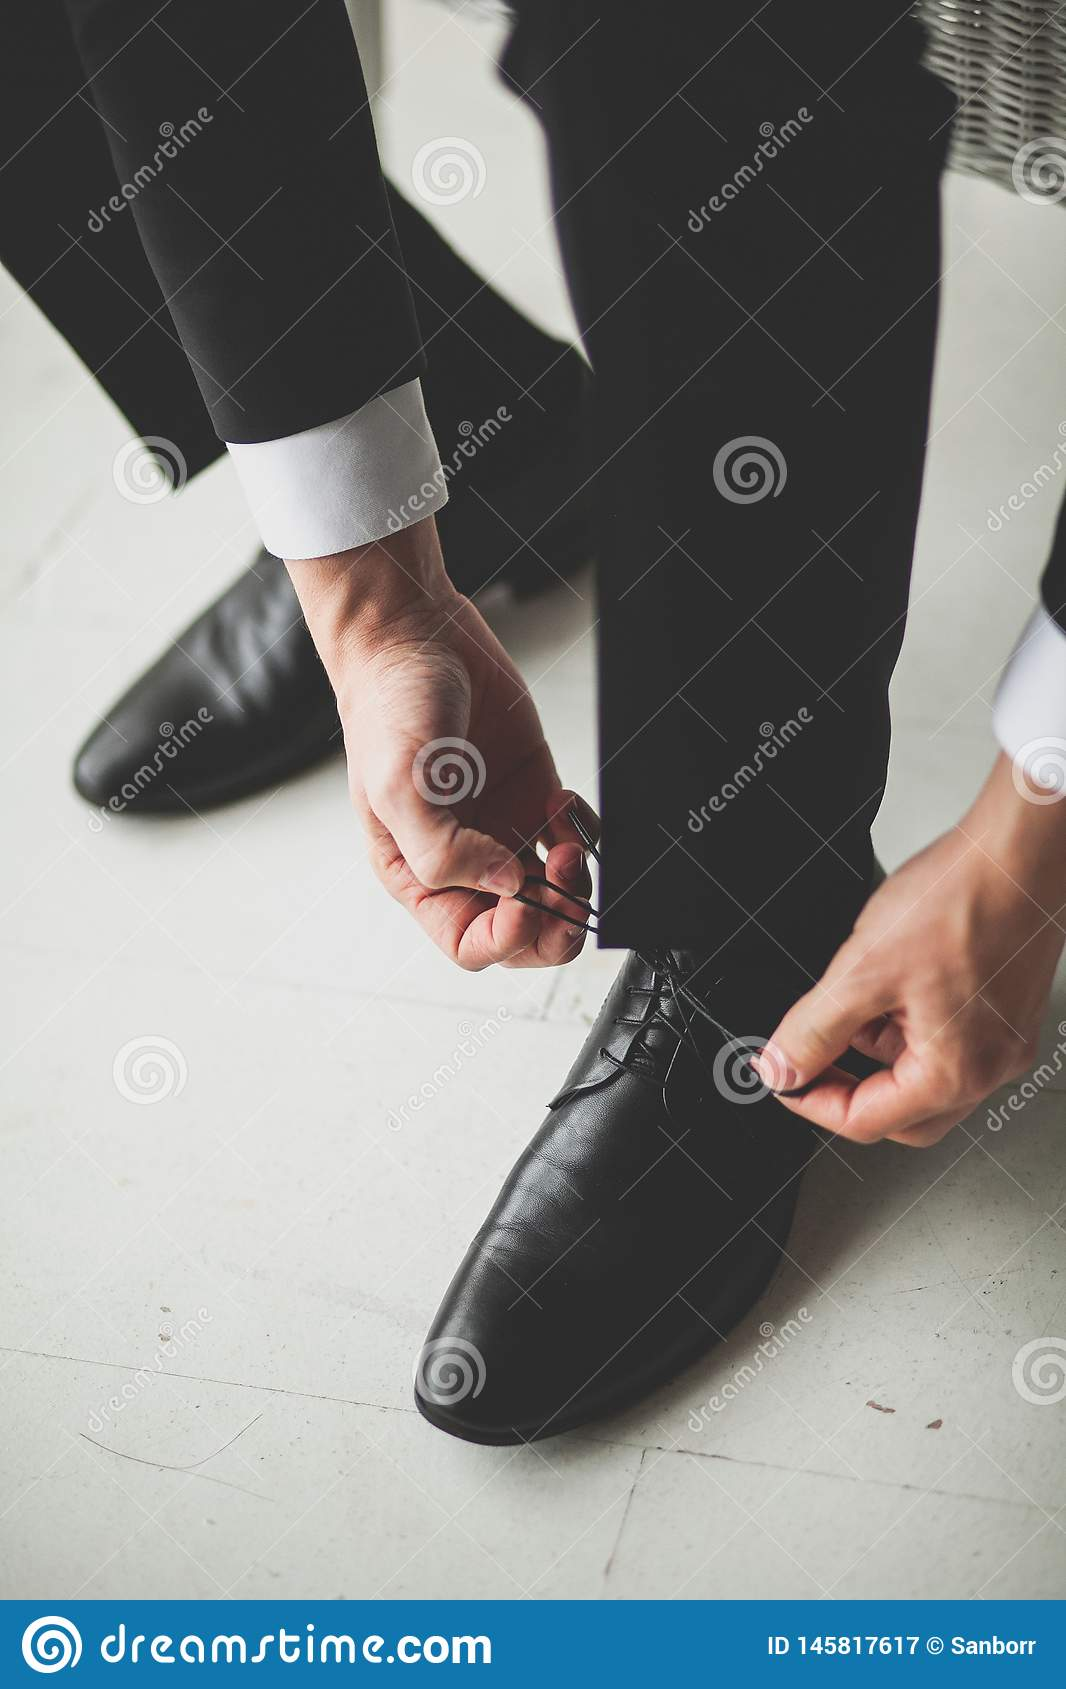 Hands men, groom, businessman tying the laces of his new black leather business shoes, close-up. The concept of business,